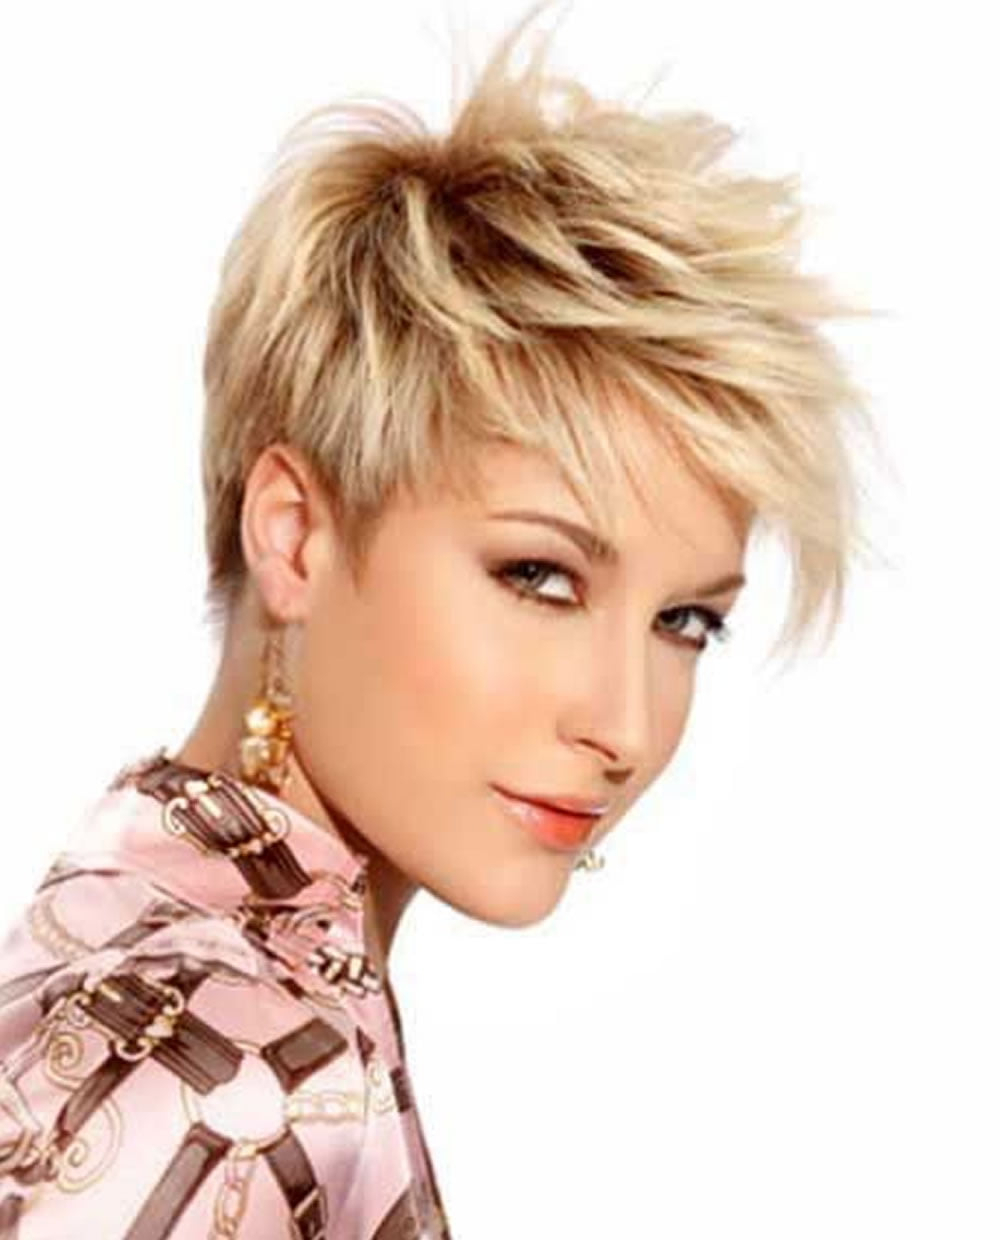 31 Chic Short Haircut Ideas 2018 & Pixie & Bob Hair With Preferred Razor Cut Pink Pixie Hairstyles With Edgy Undercut (View 10 of 20)